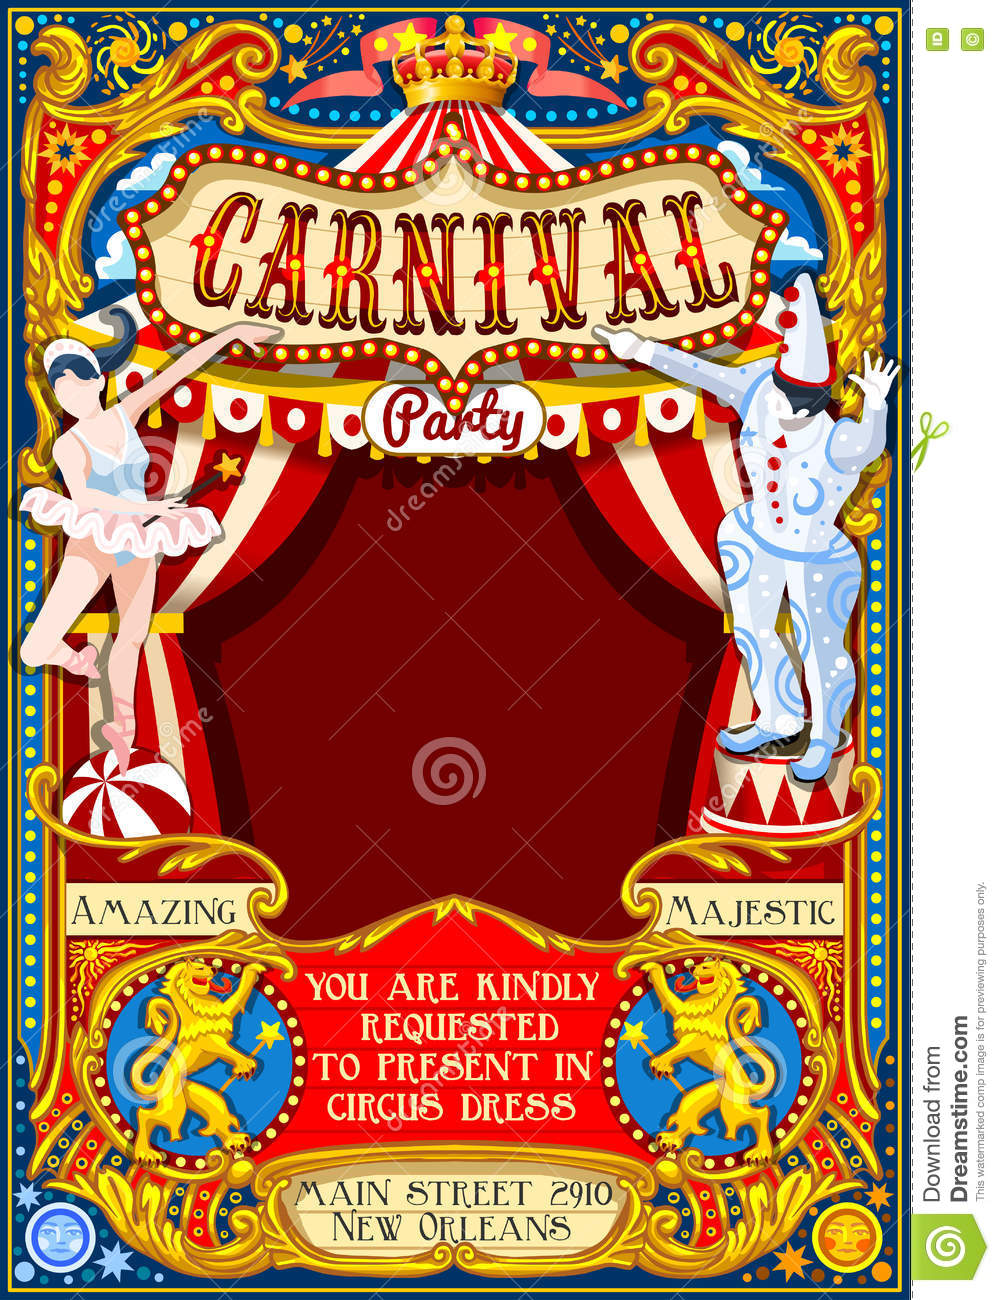 Circus Juggler Show Retro Template Cartoon Poster Invite Kids Game Birthday Party Insight Carnival Festival Background Juggling Acrobatic Cabaret Vintage